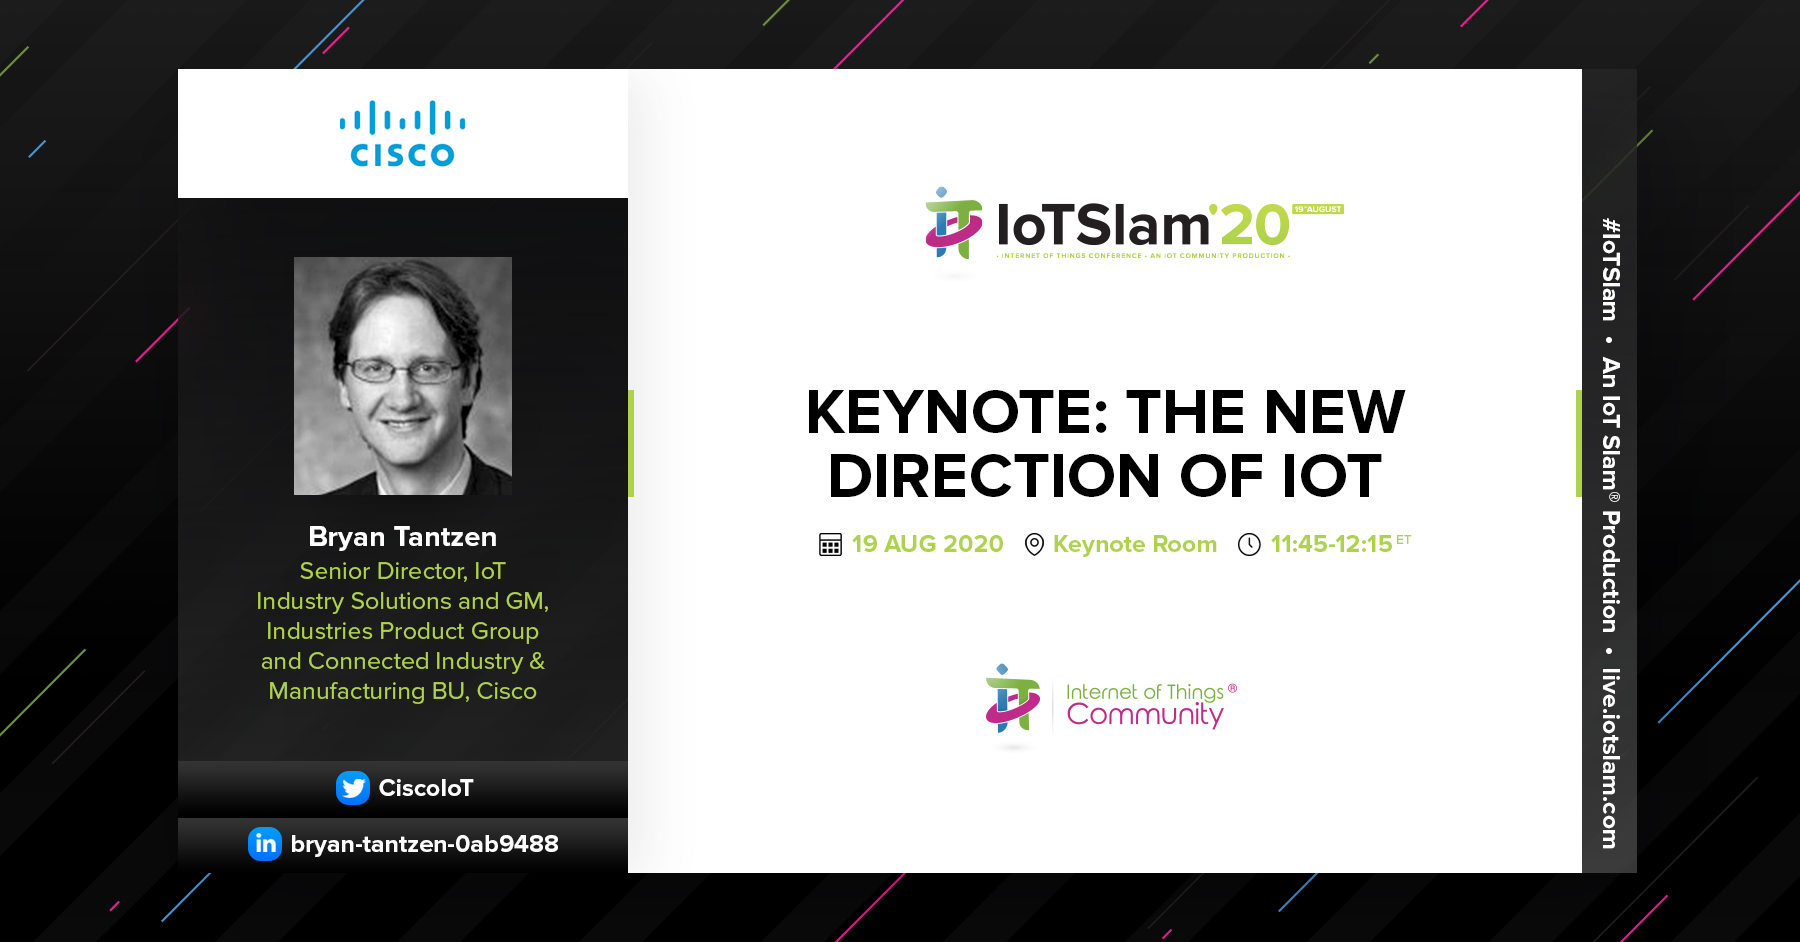 Keynote: The New Direction of IoT